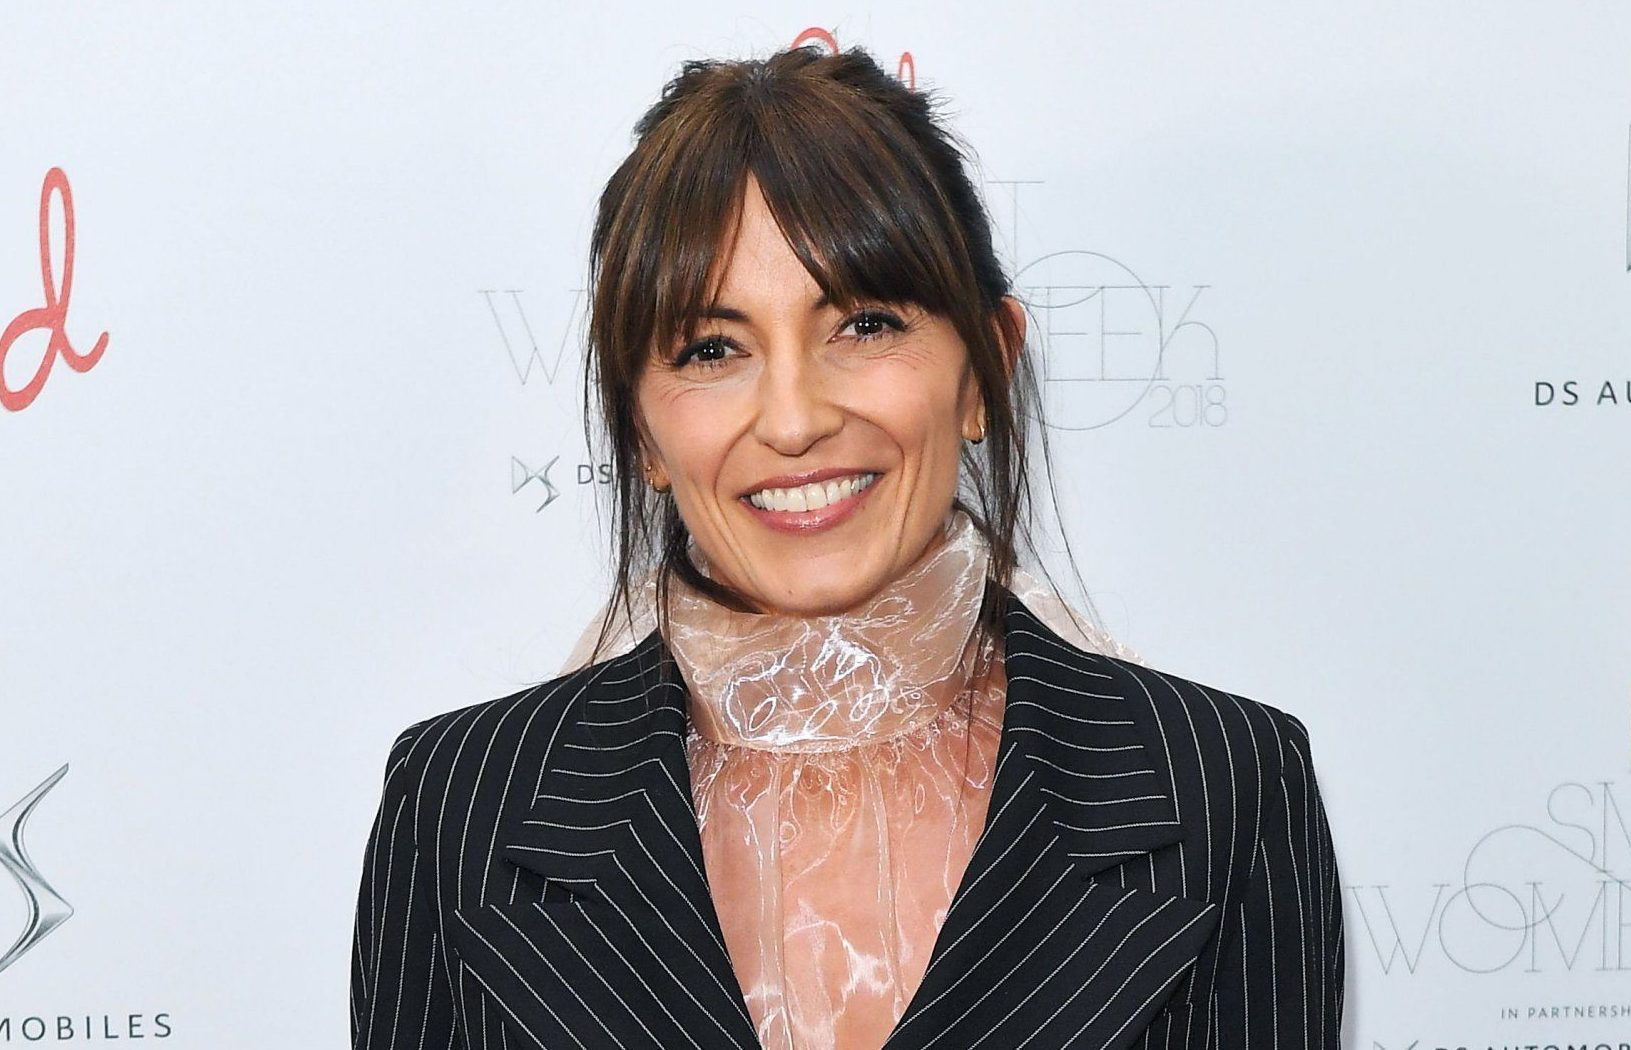 Mandatory Credit: Photo by James Gourley/REX (9886071t) Davina McCall Red Magazine 20th birthday party, London, UK - 18 Sep 2018